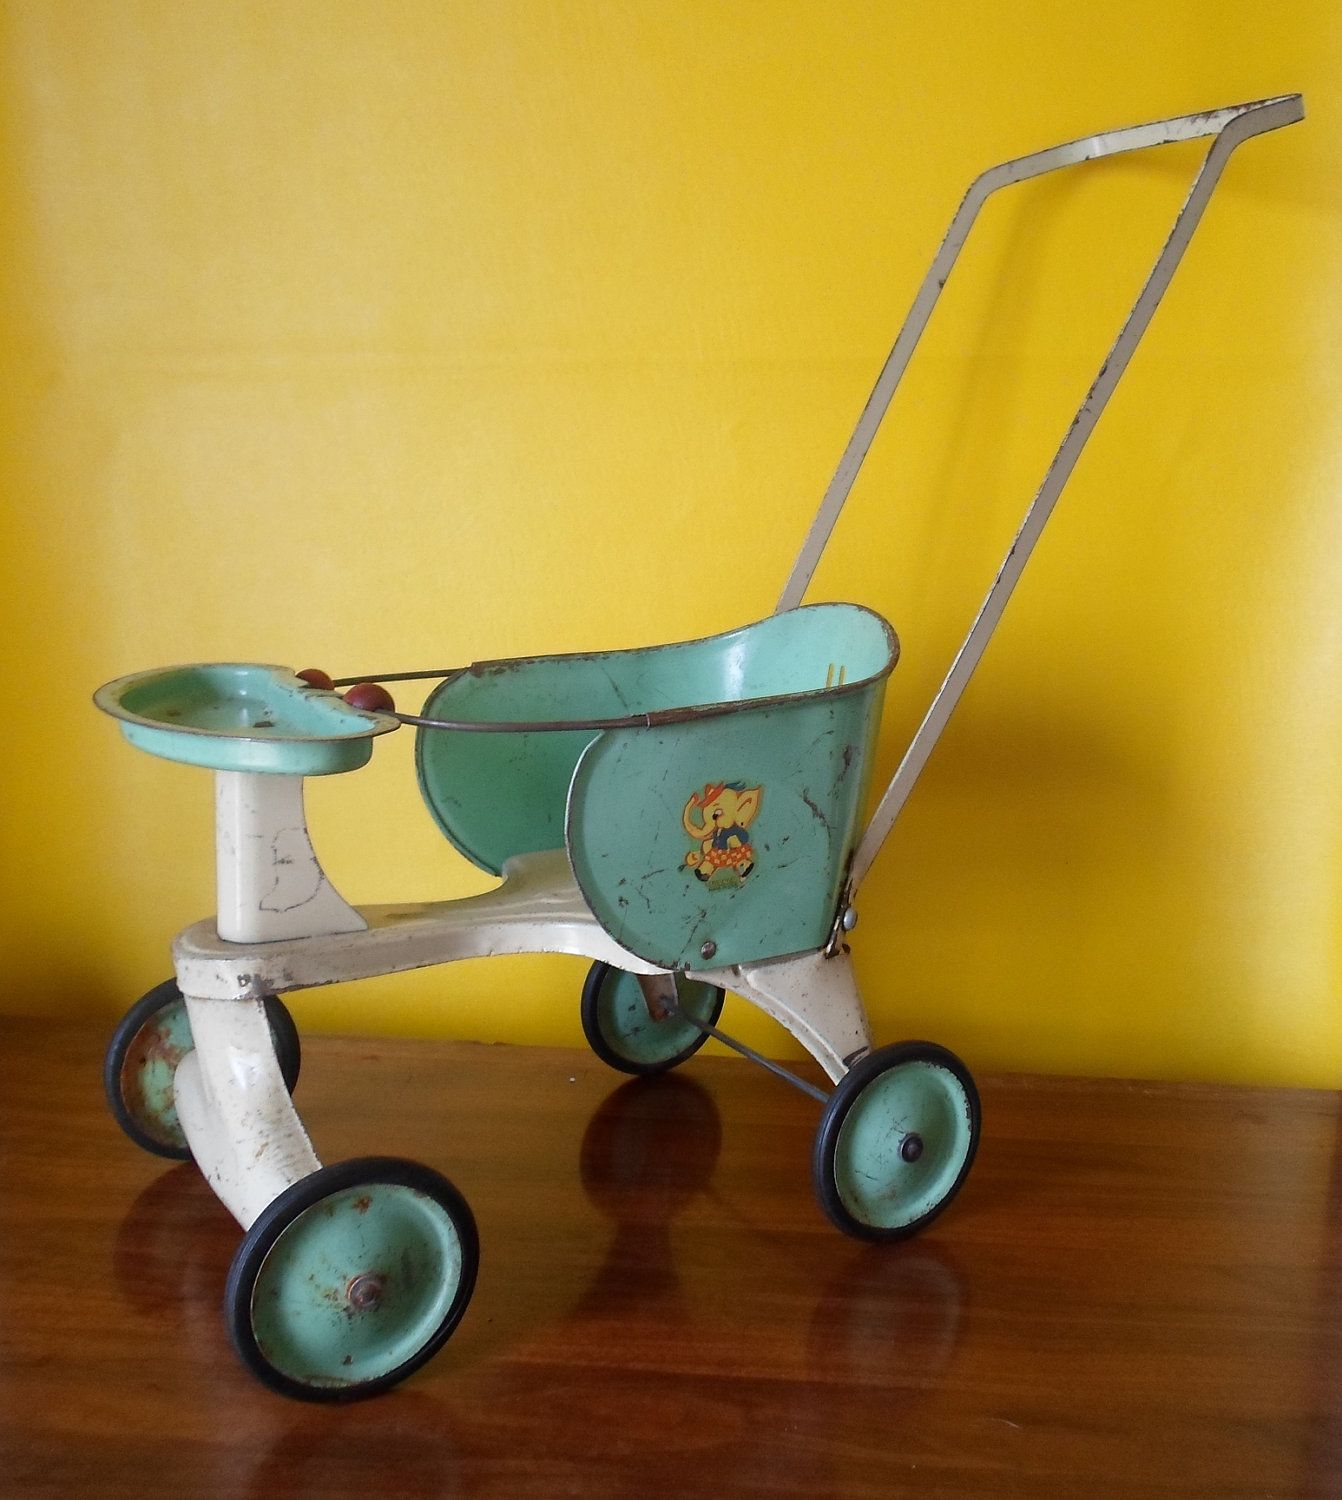 Vintage Toy Stroller Antique Turner Toy Doll Stroller Made In Usa Childs Toy